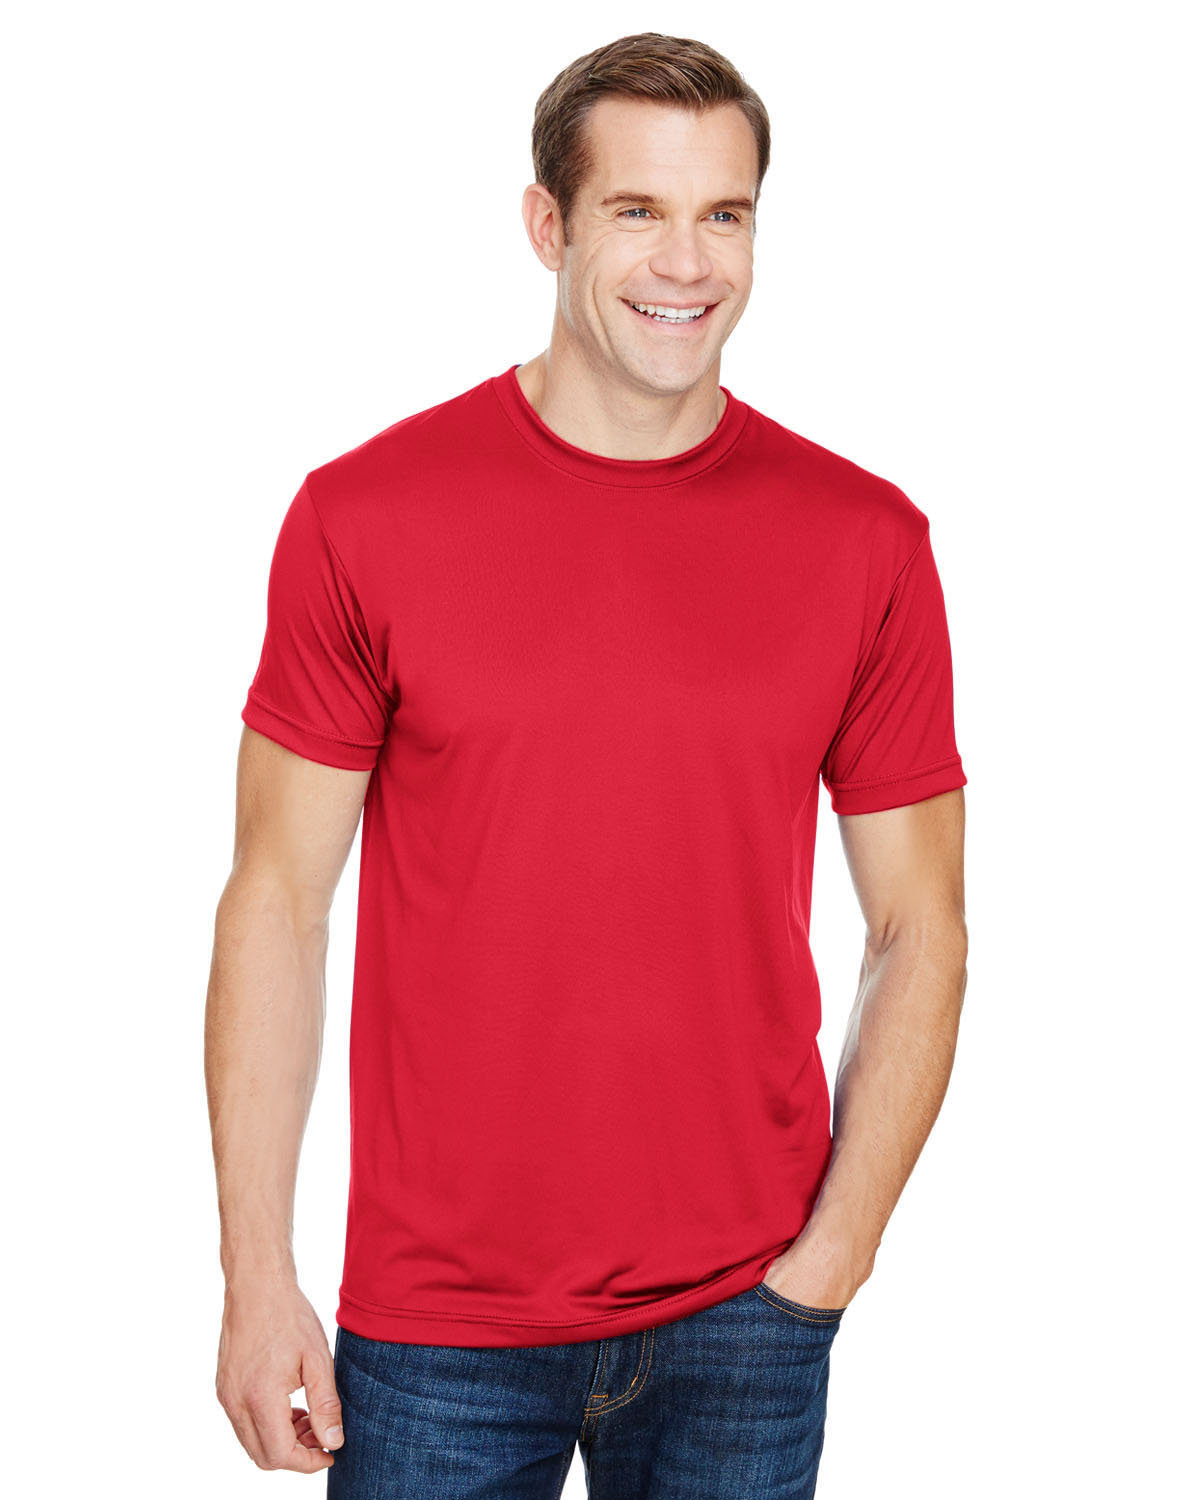 Bayside Unisex 4.5 oz., Polyester Performance T-Shirt RED